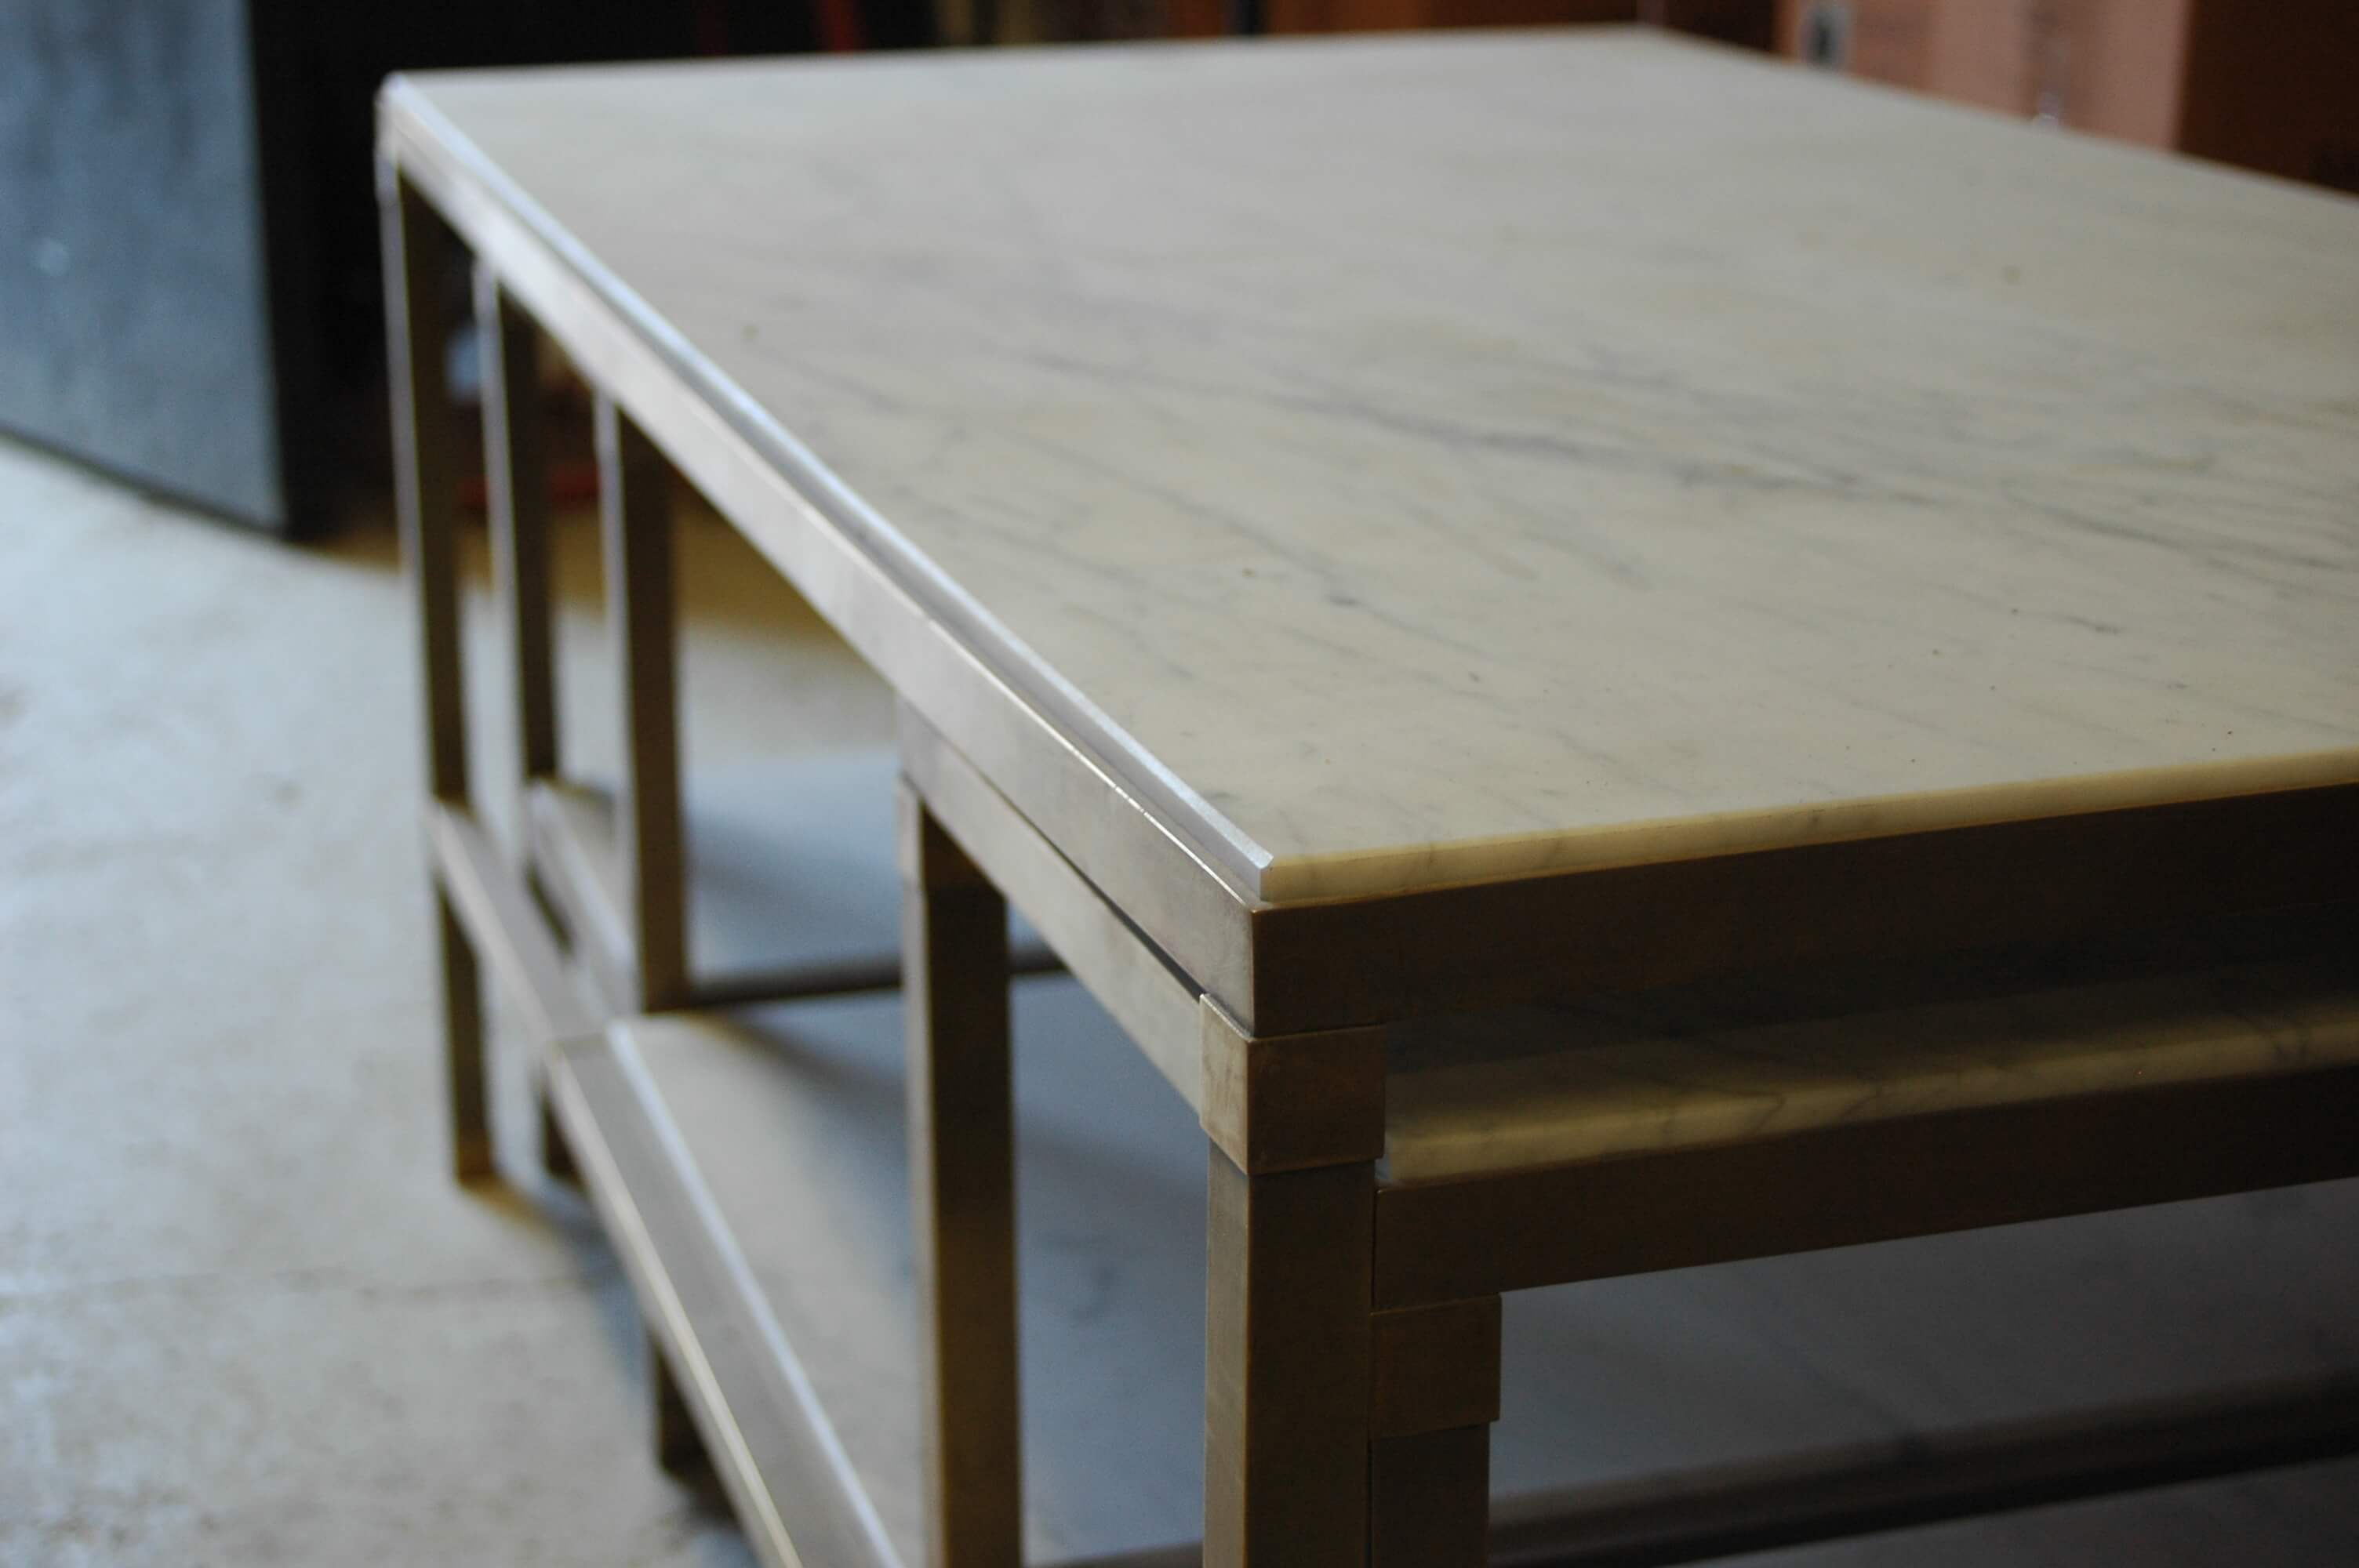 Renovation and transformation of marble into furniture